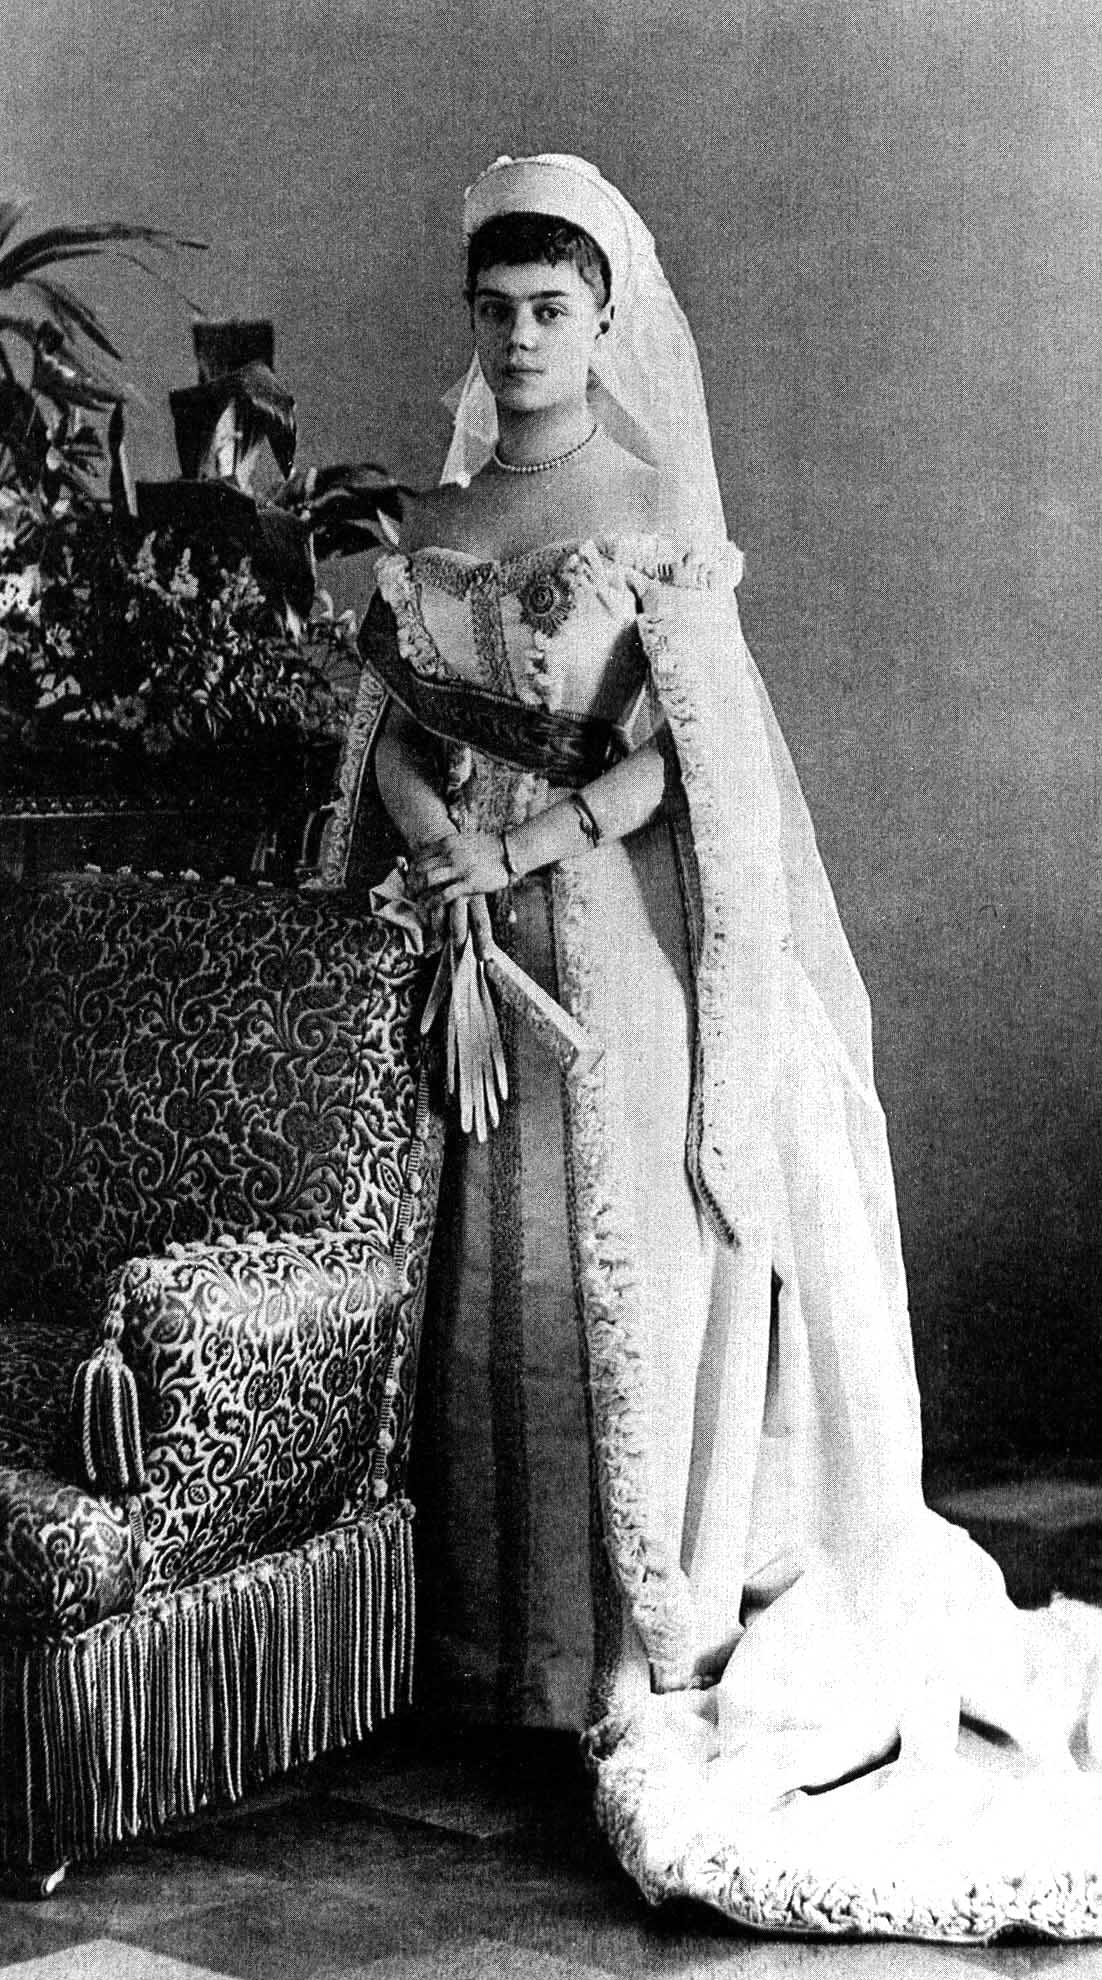 Mariage Traditionnel Russe - Culture russe